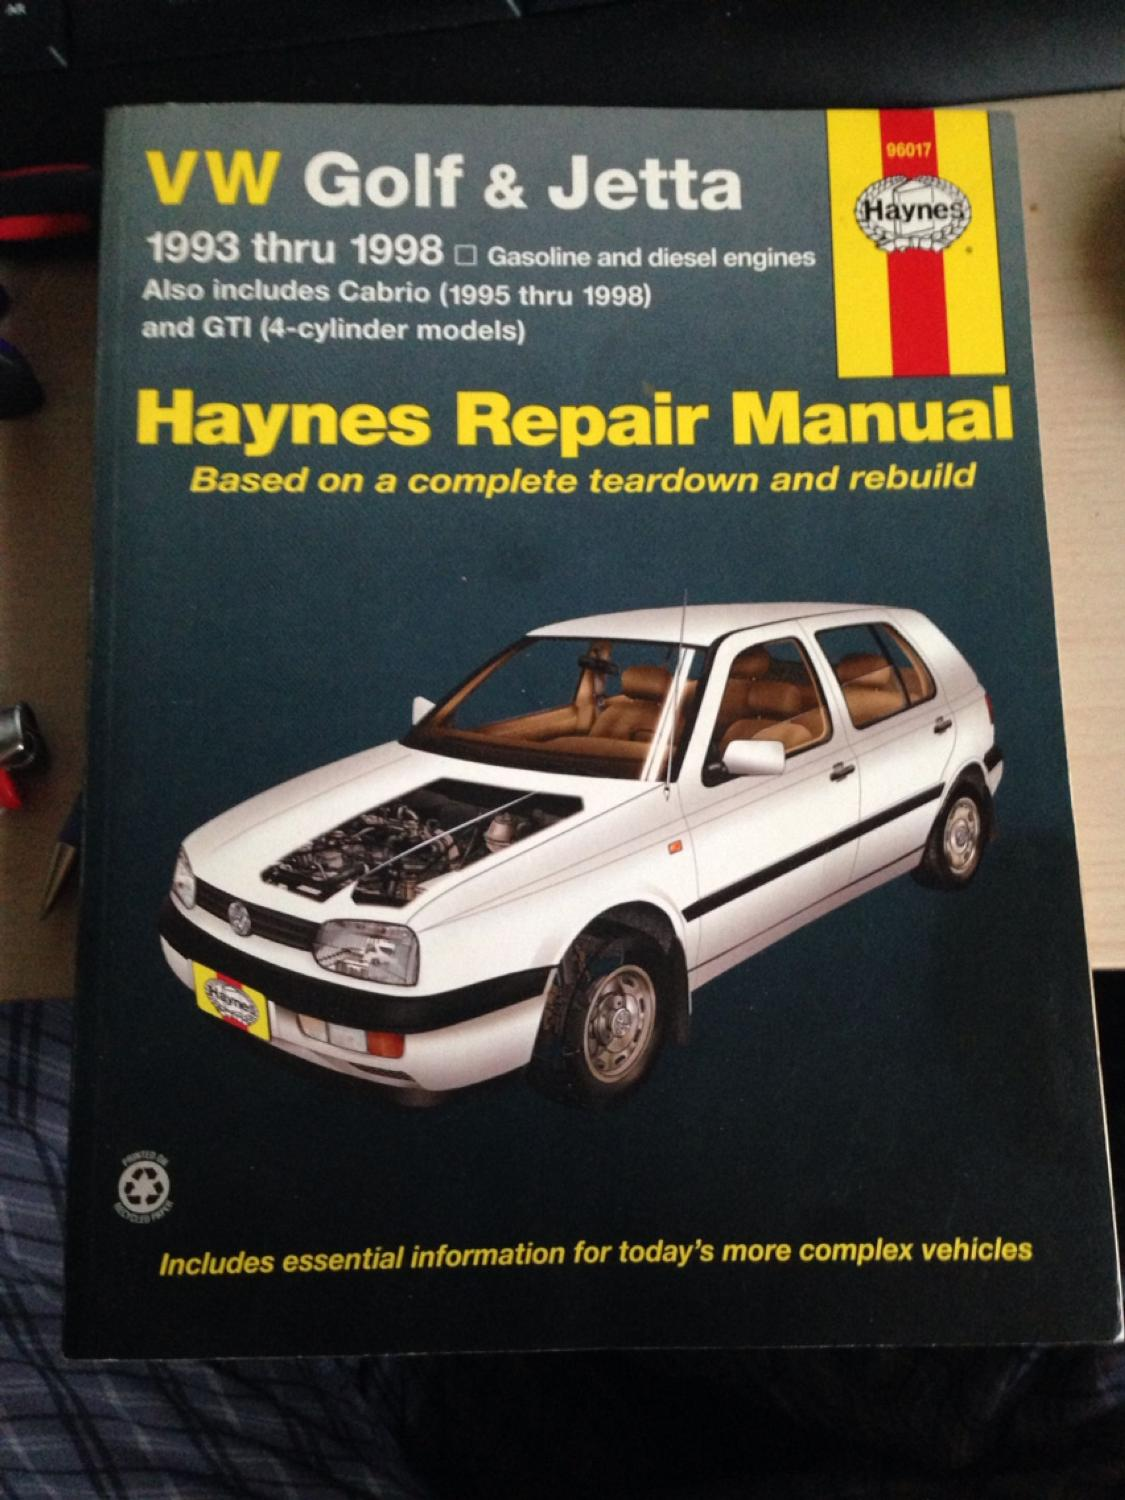 Best Volkswagen Golf & Jetta Repair Manual. 1993 - 1998 for sale in  Vaudreuil, Quebec for 2018